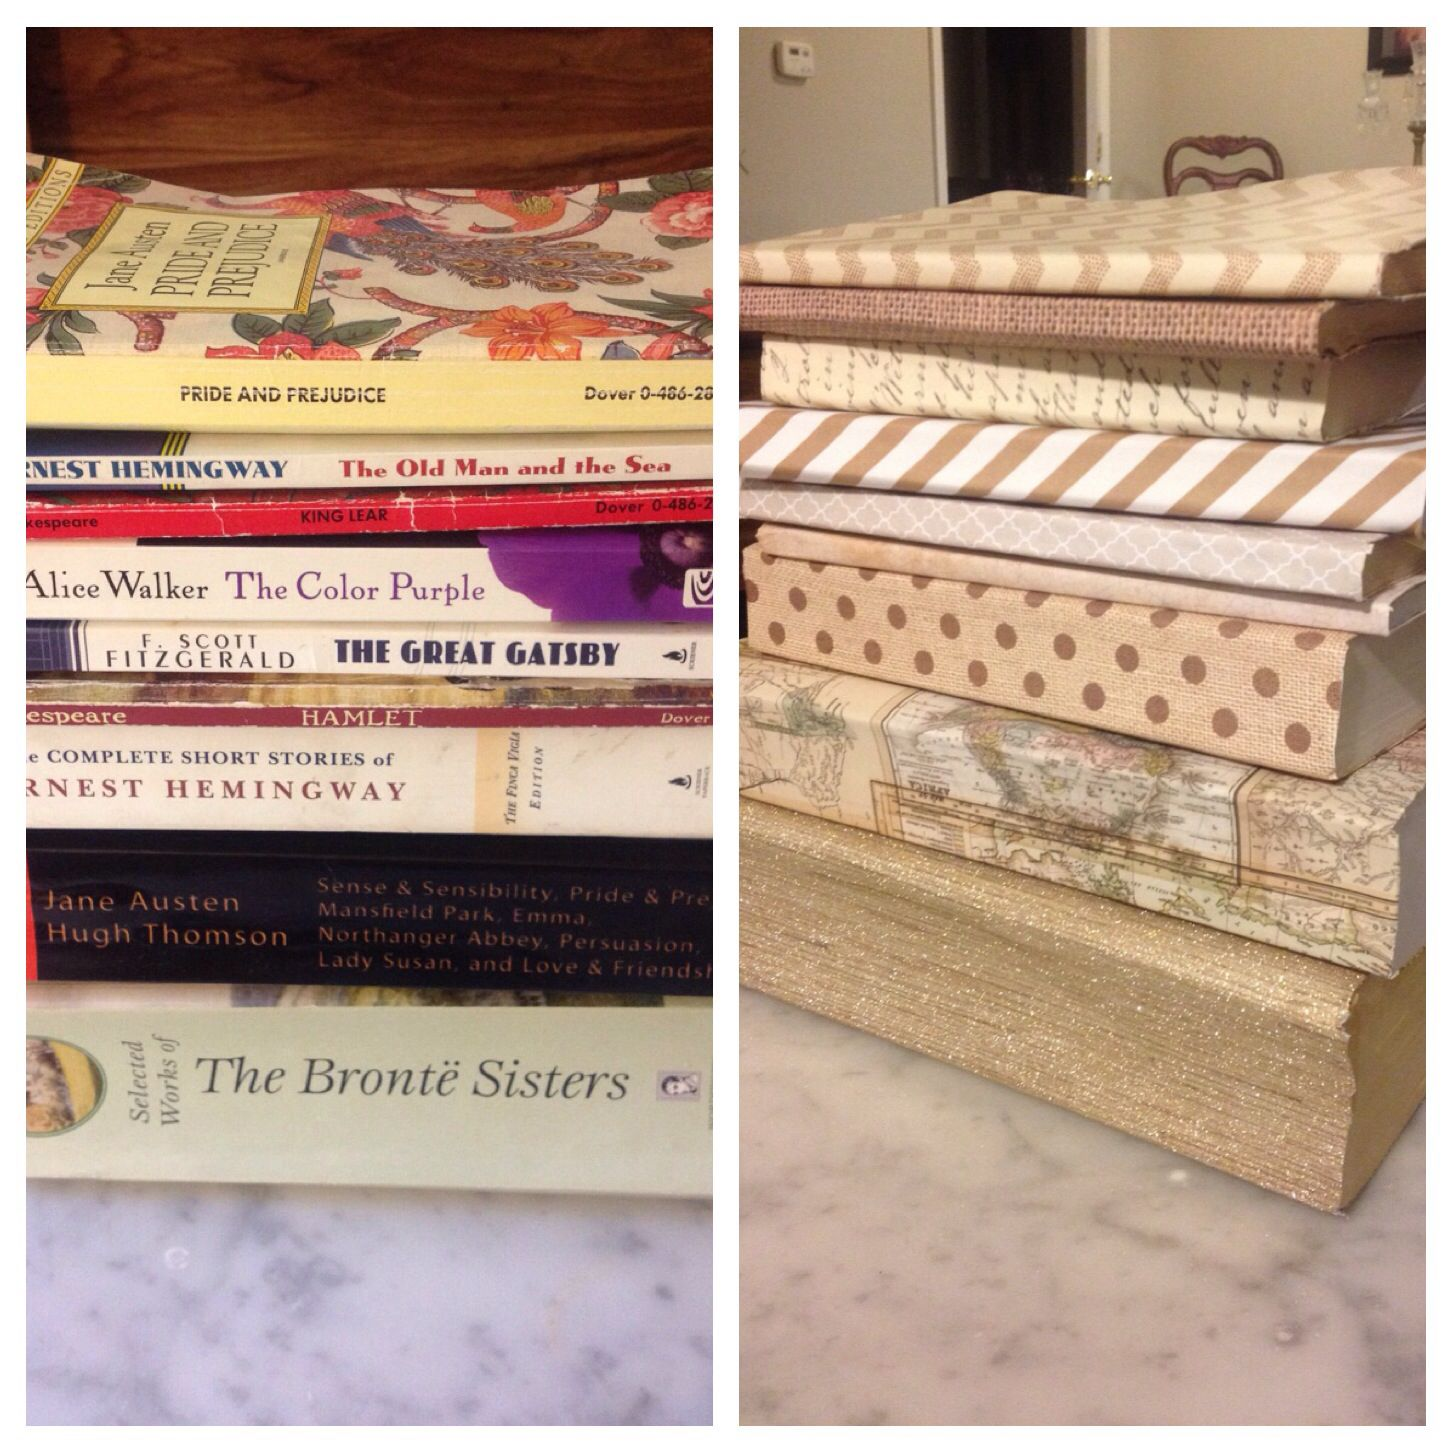 Cover your favorite books in paper all in the same color scheme to add some cute collaboration to your bookshelf. Just mod podge and decorative paper from Hobby lobby